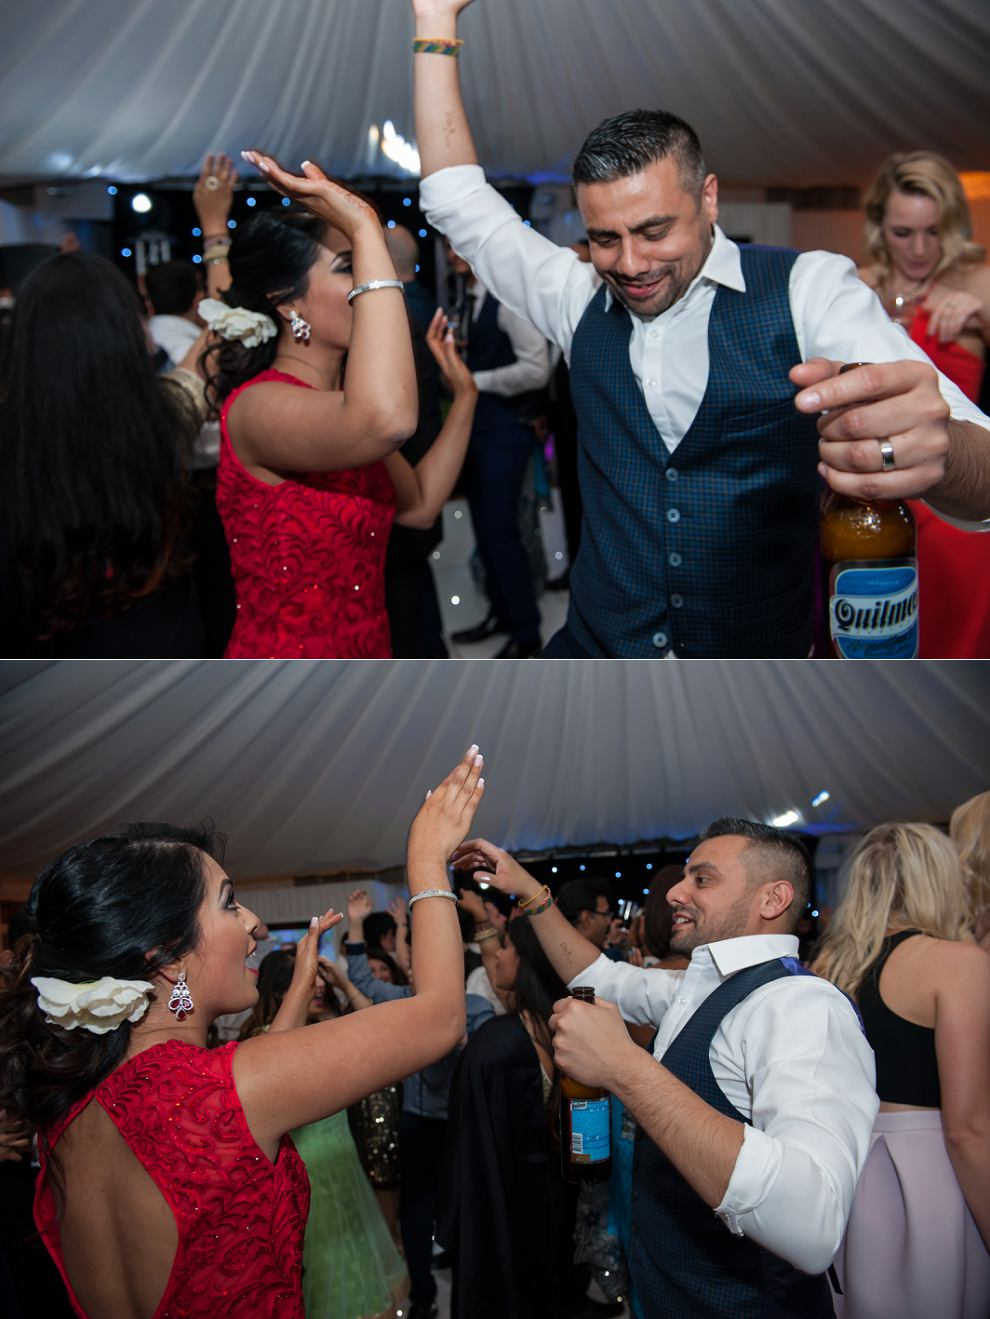 Boreham-House-Wedding-Essex-Rupal Dipen-77